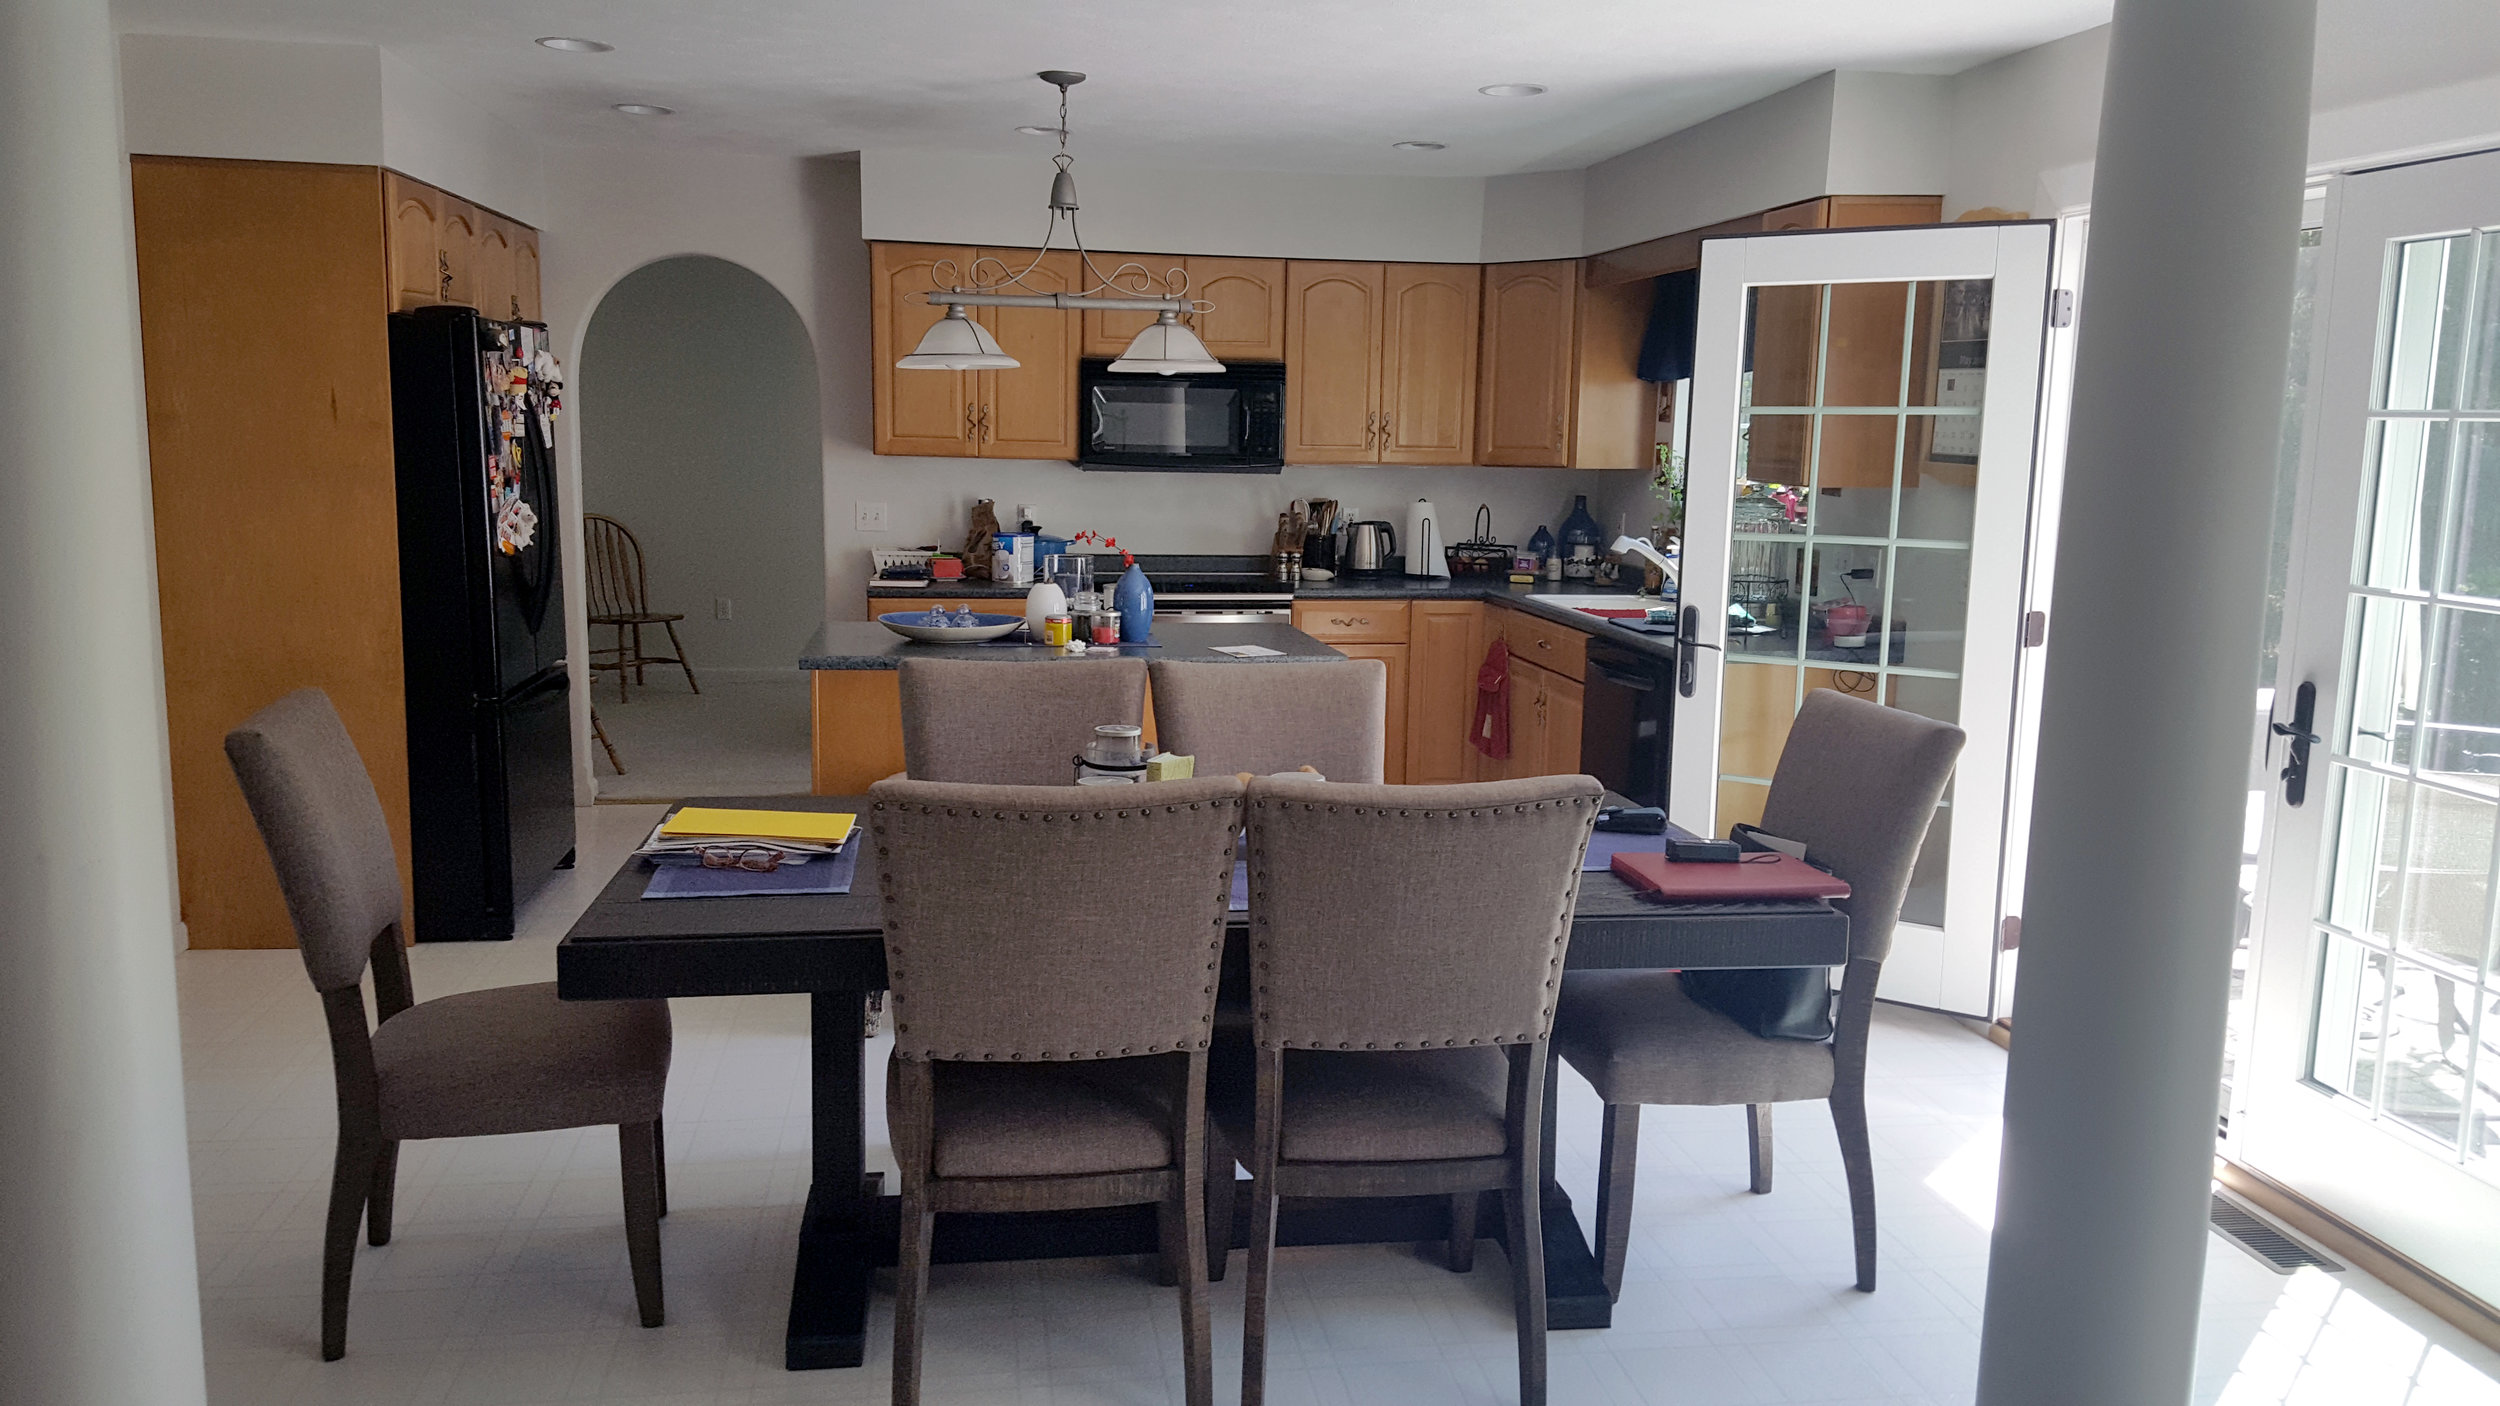 BEFORE: An eat-in kitchen was tucked in the corner with a dining room behind